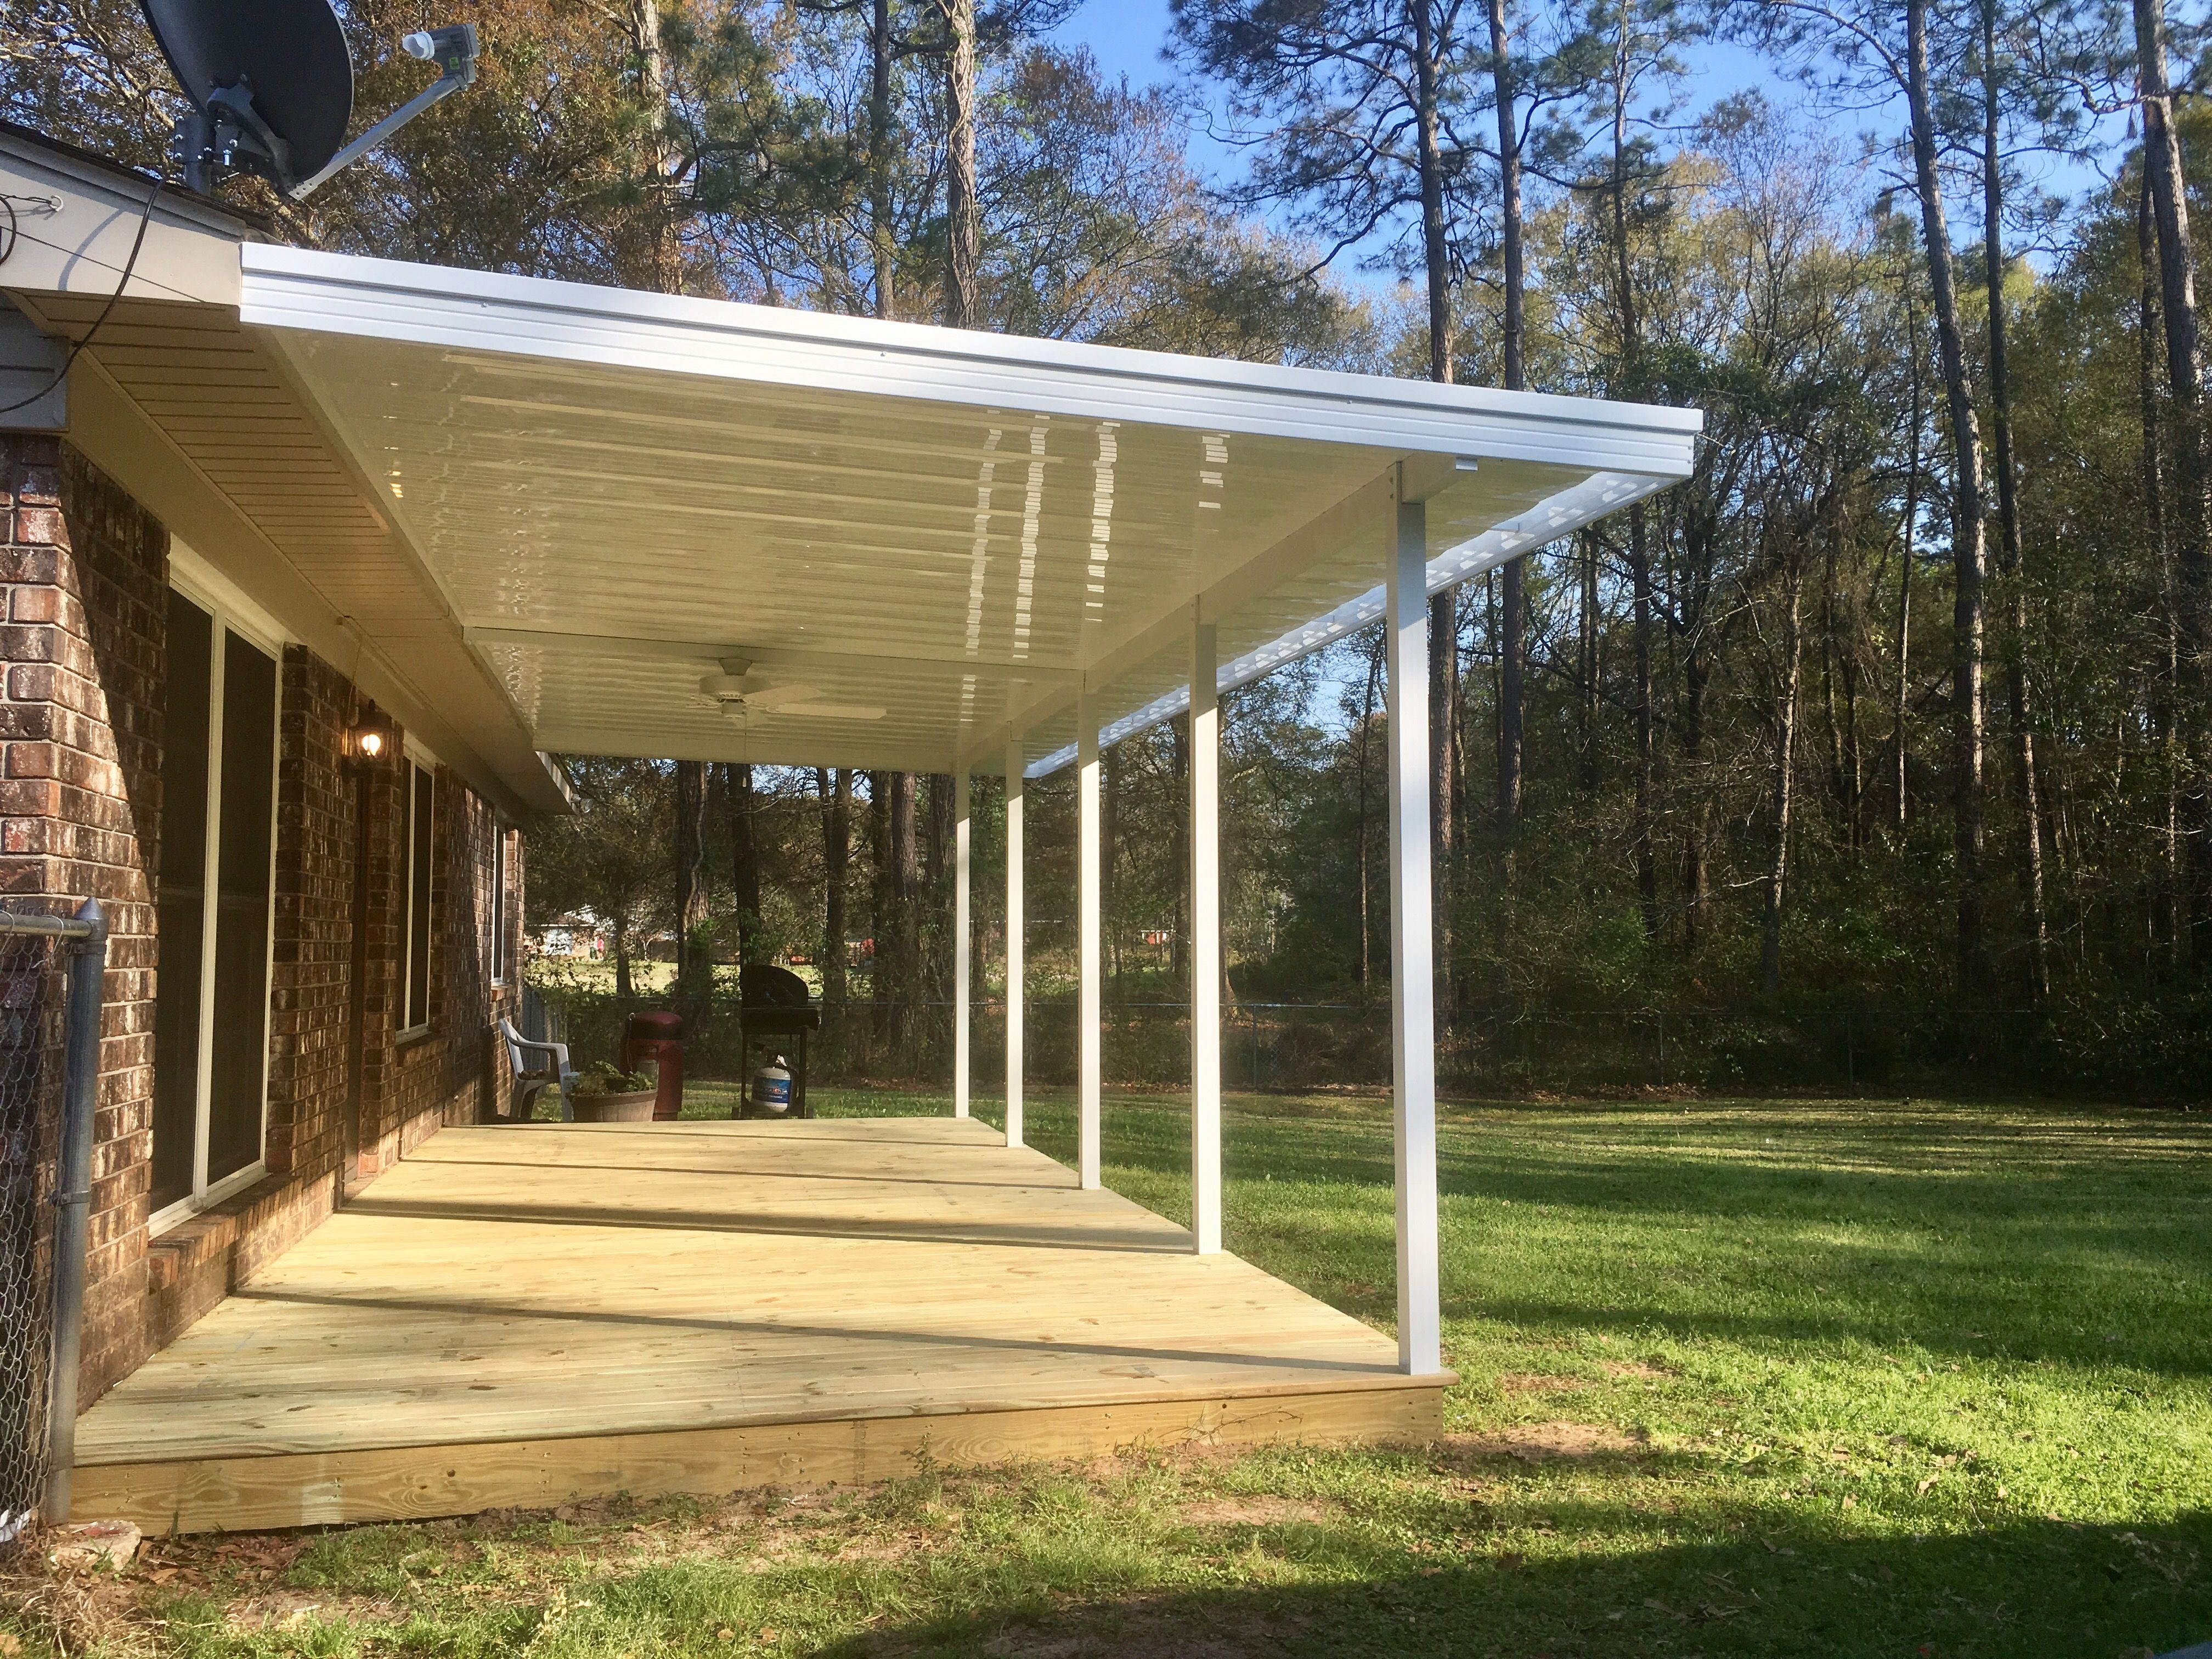 Pin By Jack Ray Siding On Outstanding Aluminum Covers Aluminum Patio Covers Aluminum Patio Outdoor Decor